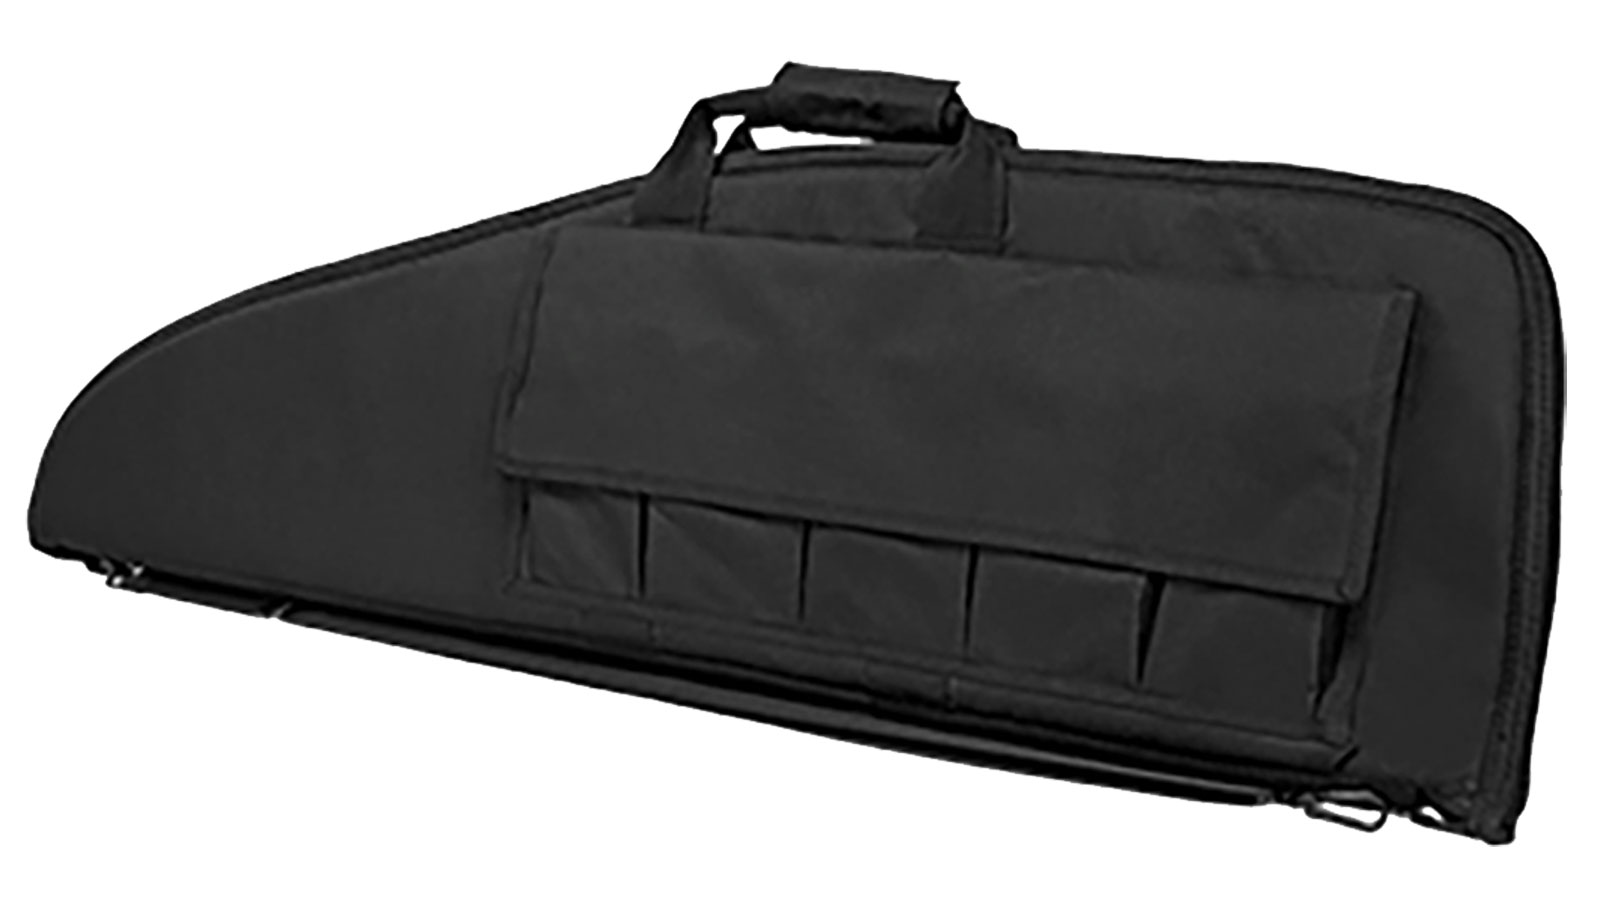 NCStar CV2907-40 2907 Rifle Case 40 PVC Tactical Nylon Black in.